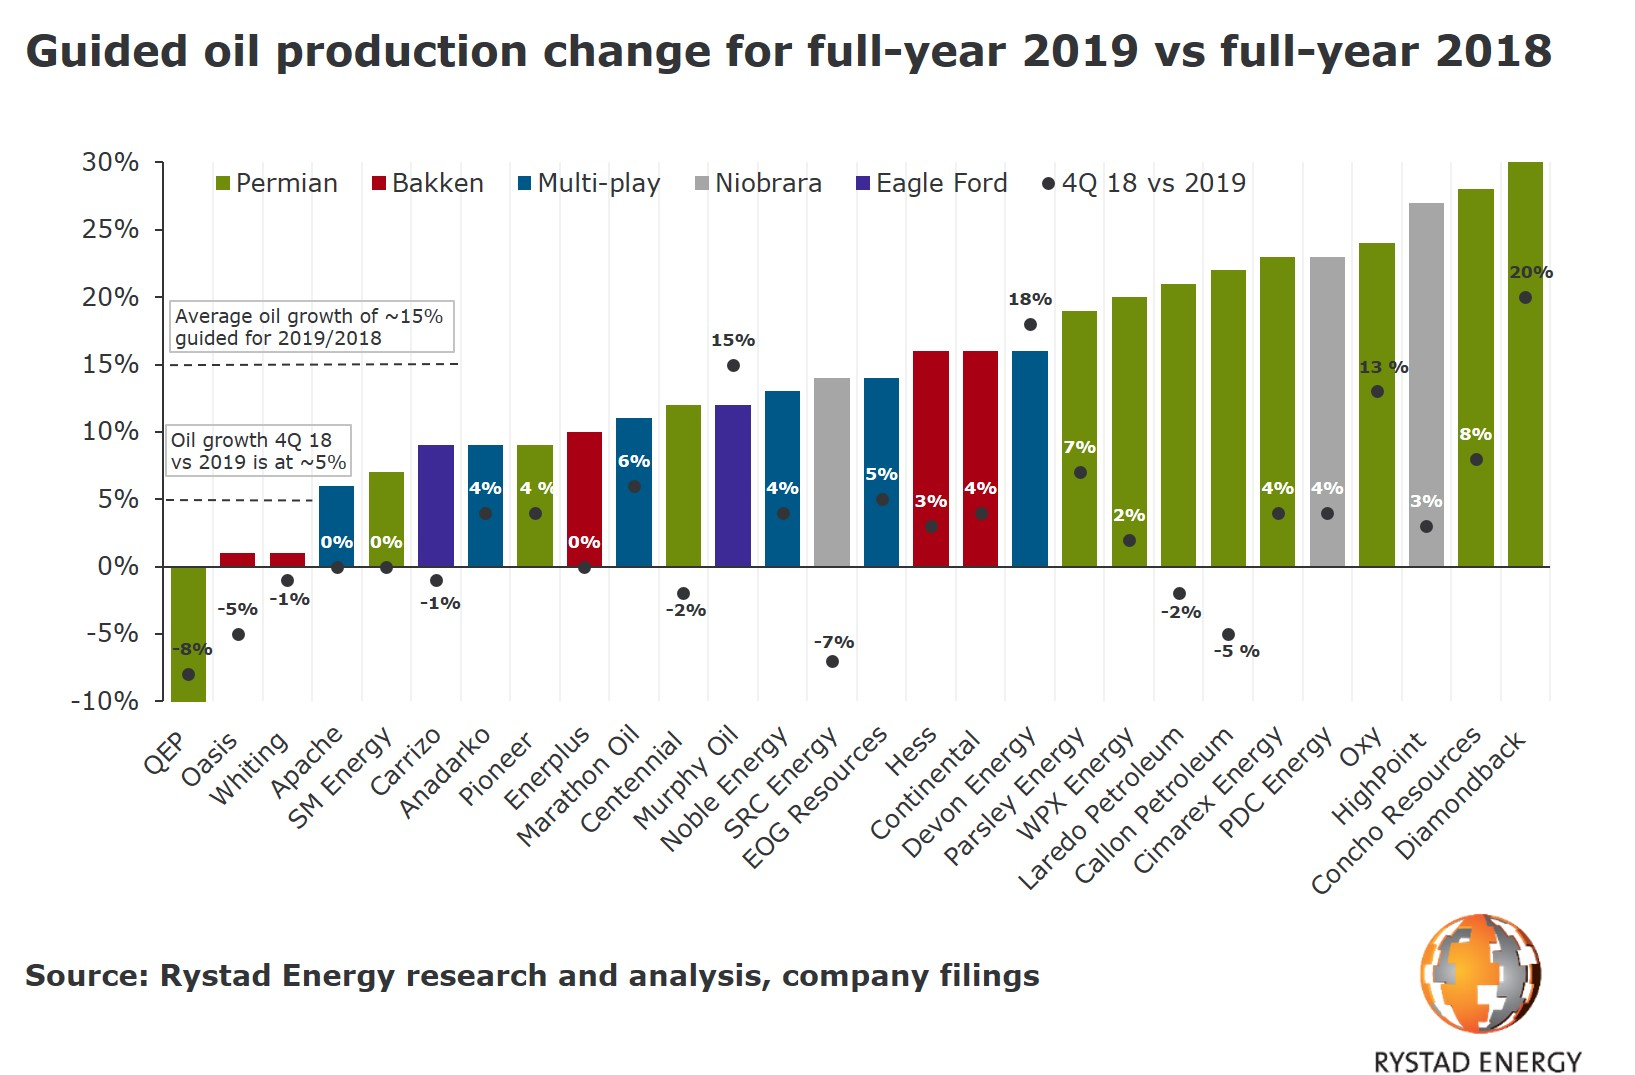 A bar chart showing the guided oil production change for full-year 2019 vs full-year 2018